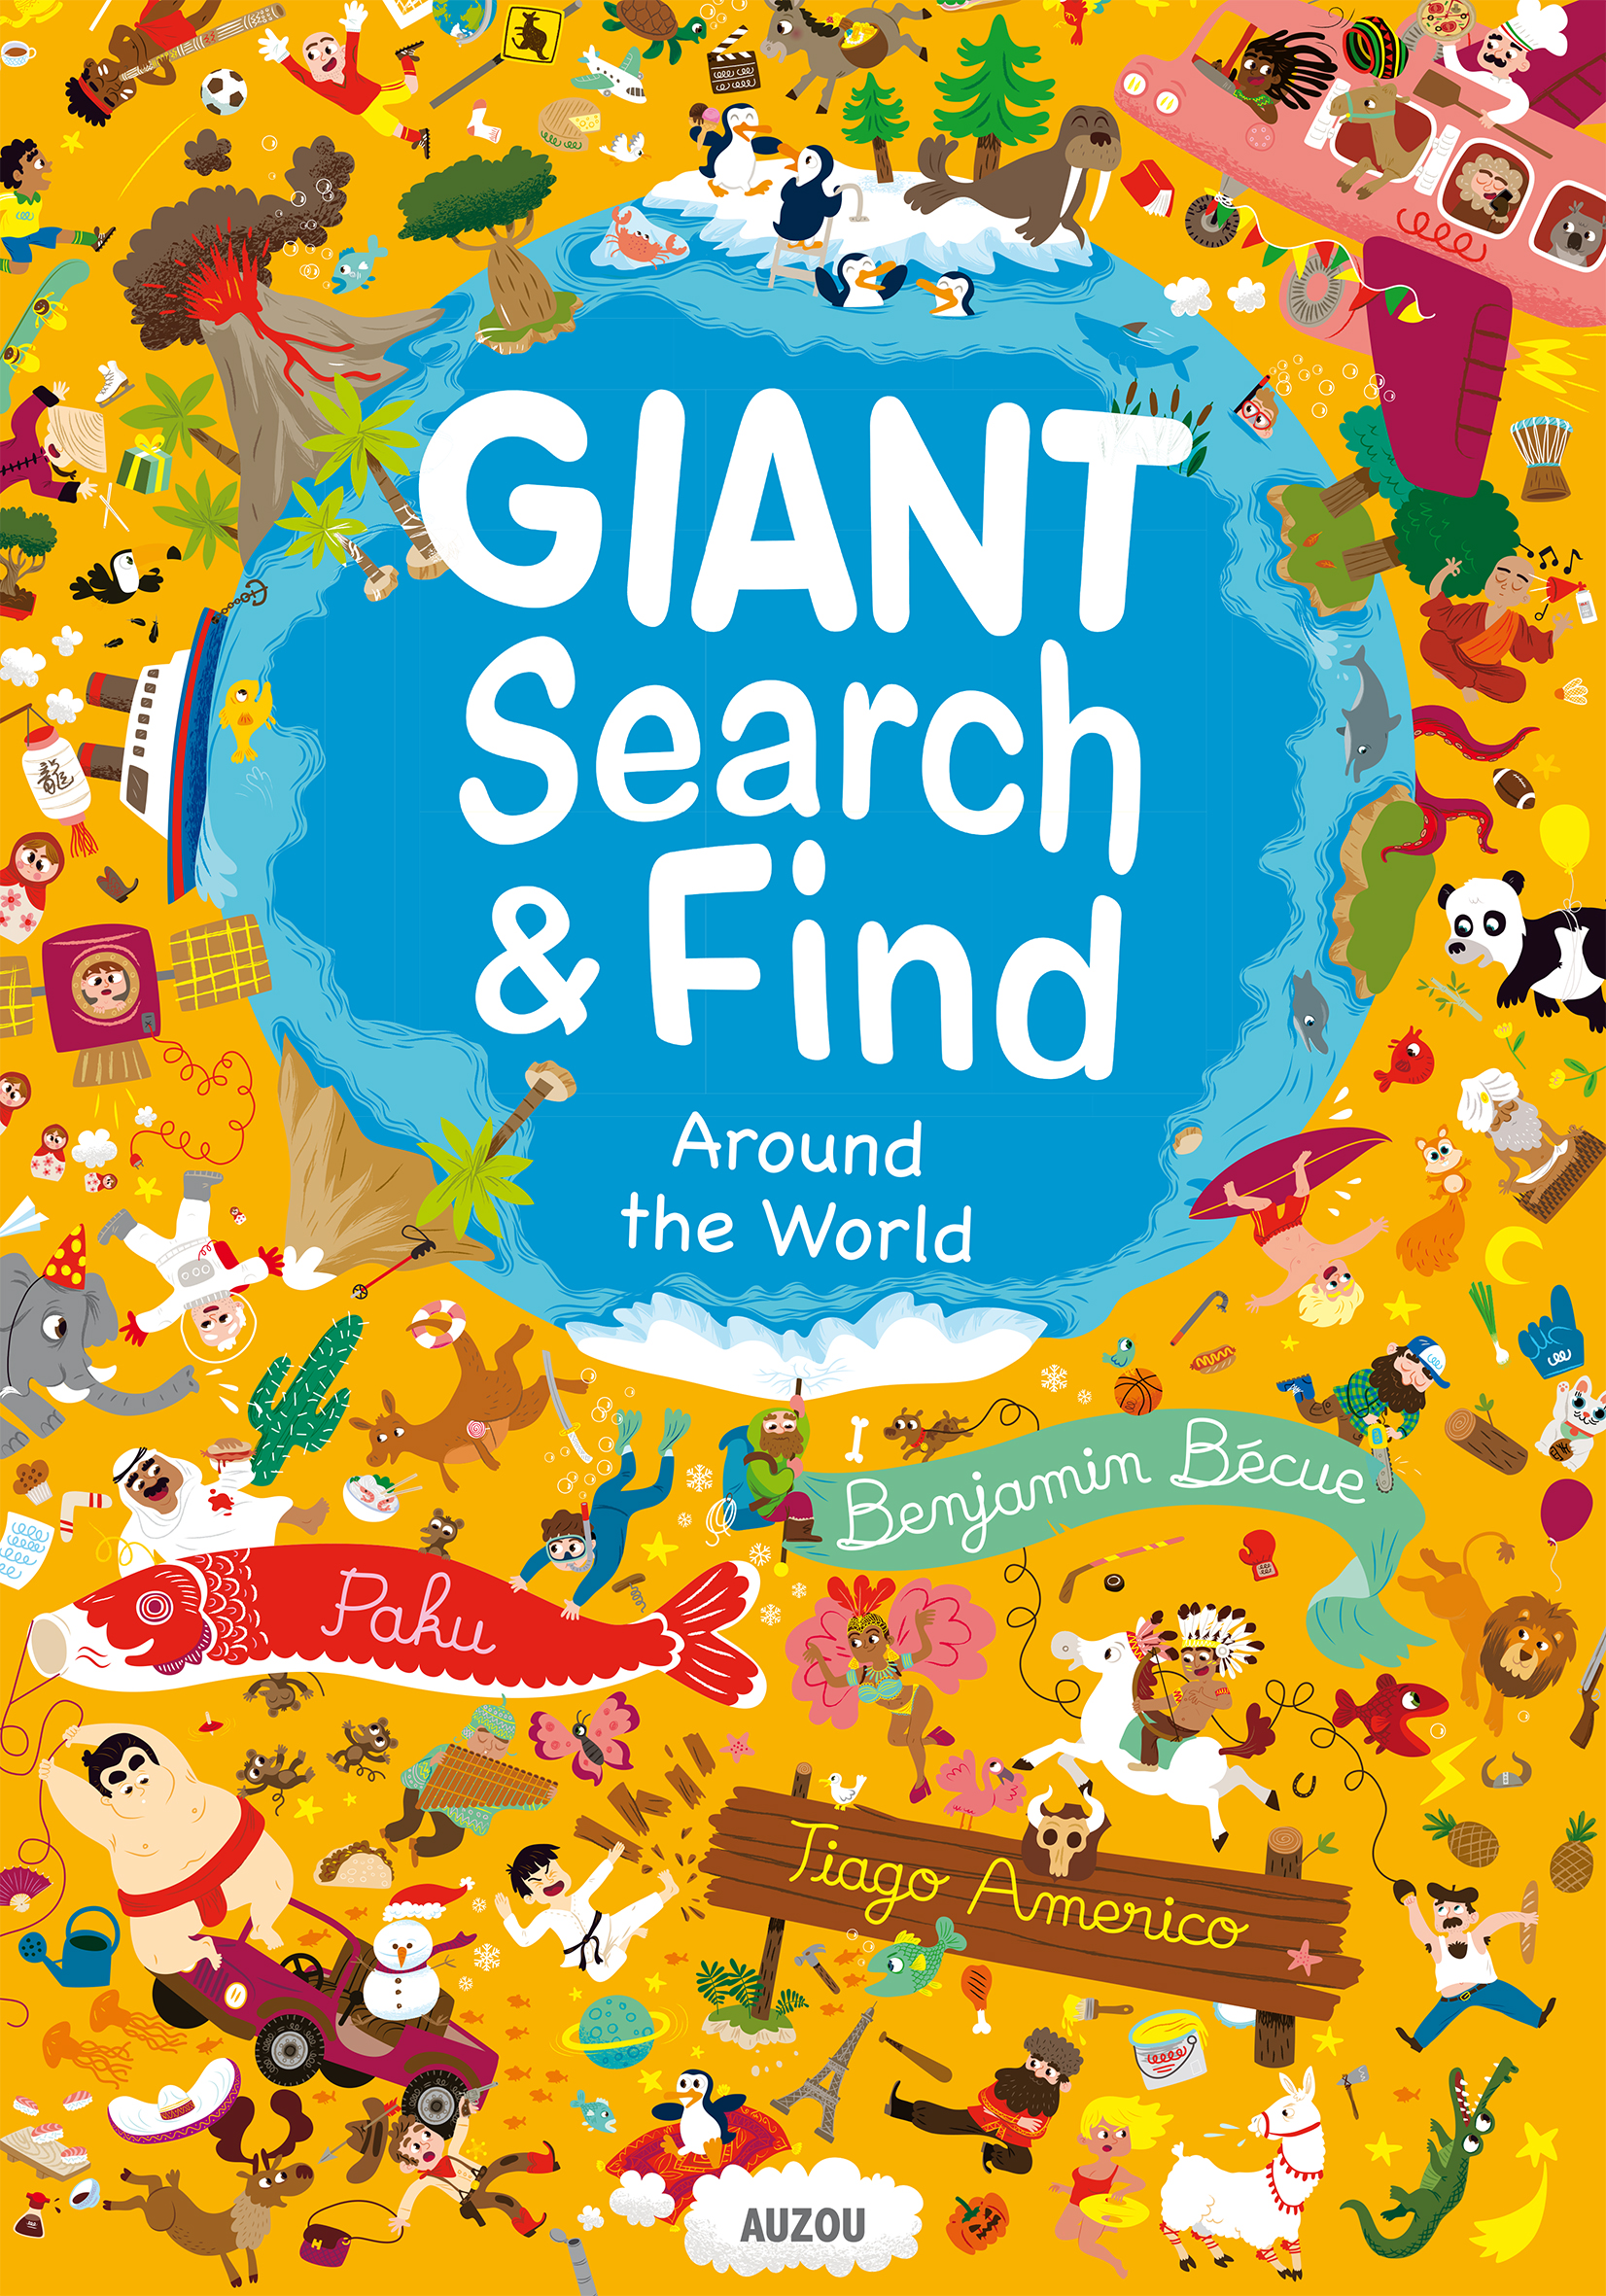 Giant search & find around the world